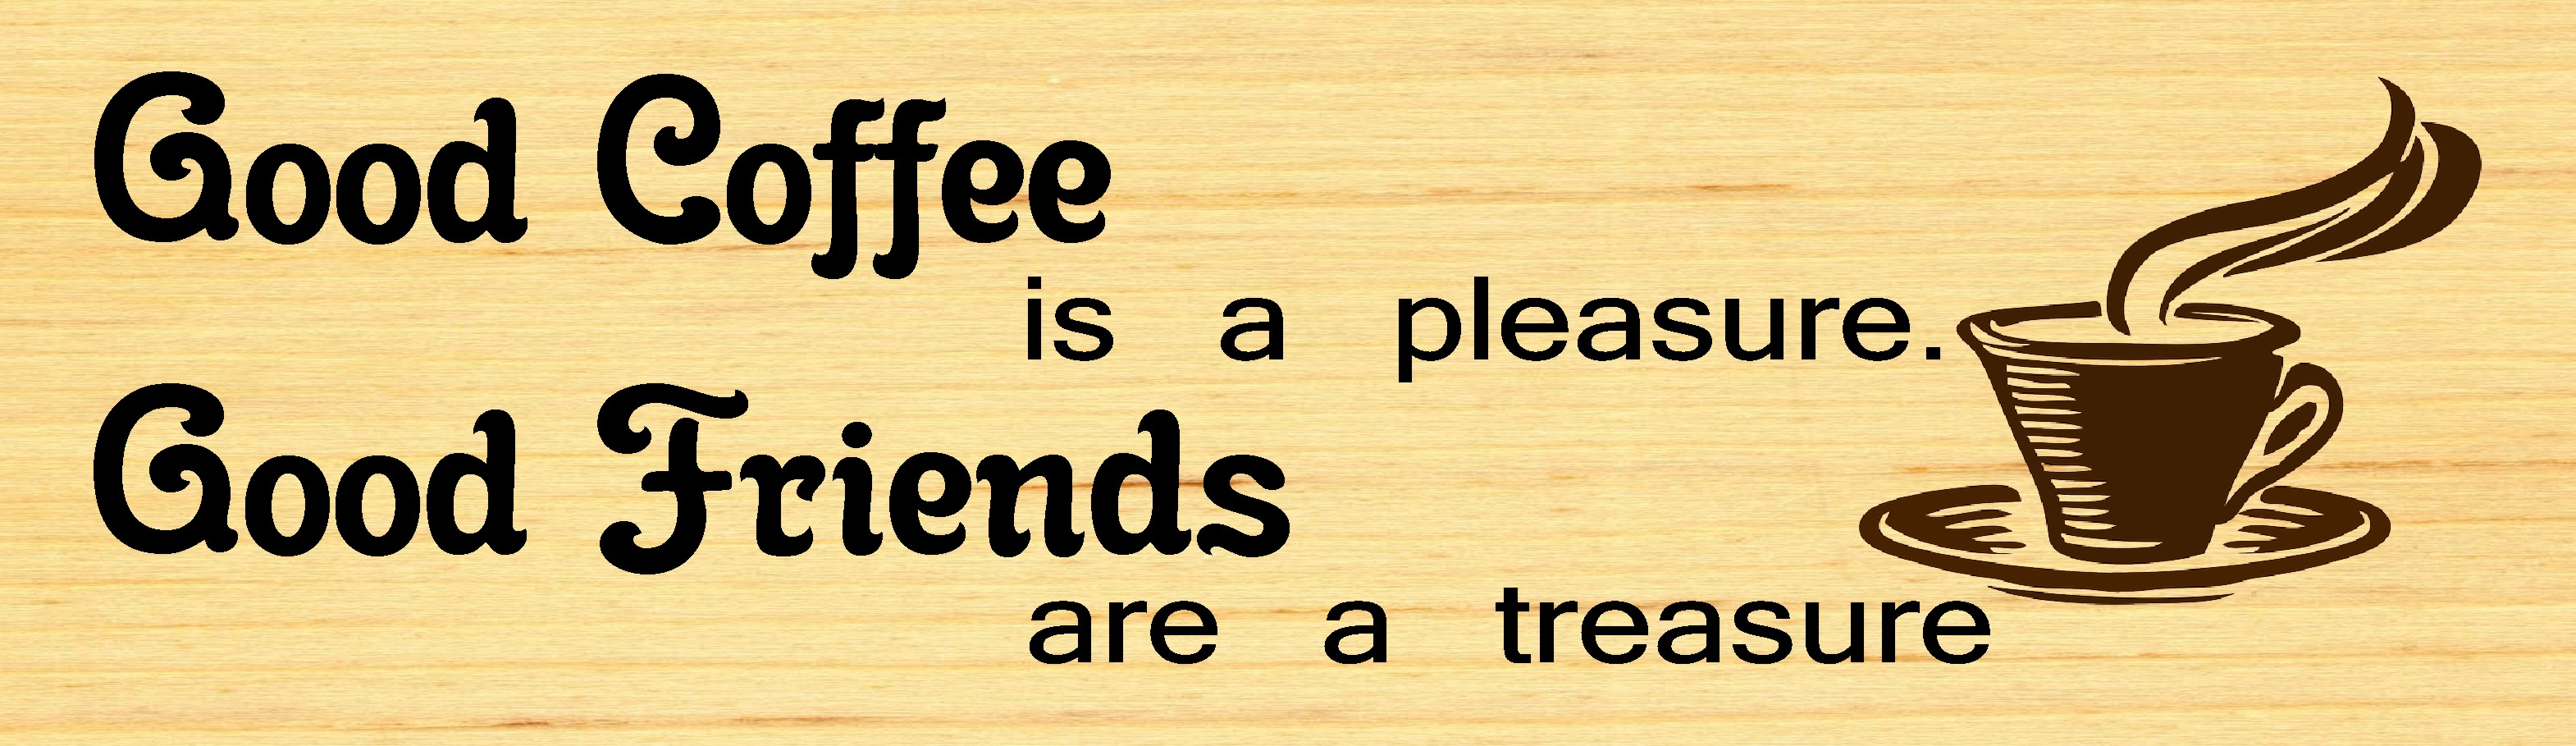 "GOOD COFFEE IS A PLEASURE. GOOD FRIENDS ARE A TREASURE 10.5"" X 3"" WOODEN BLOCK SIGN"